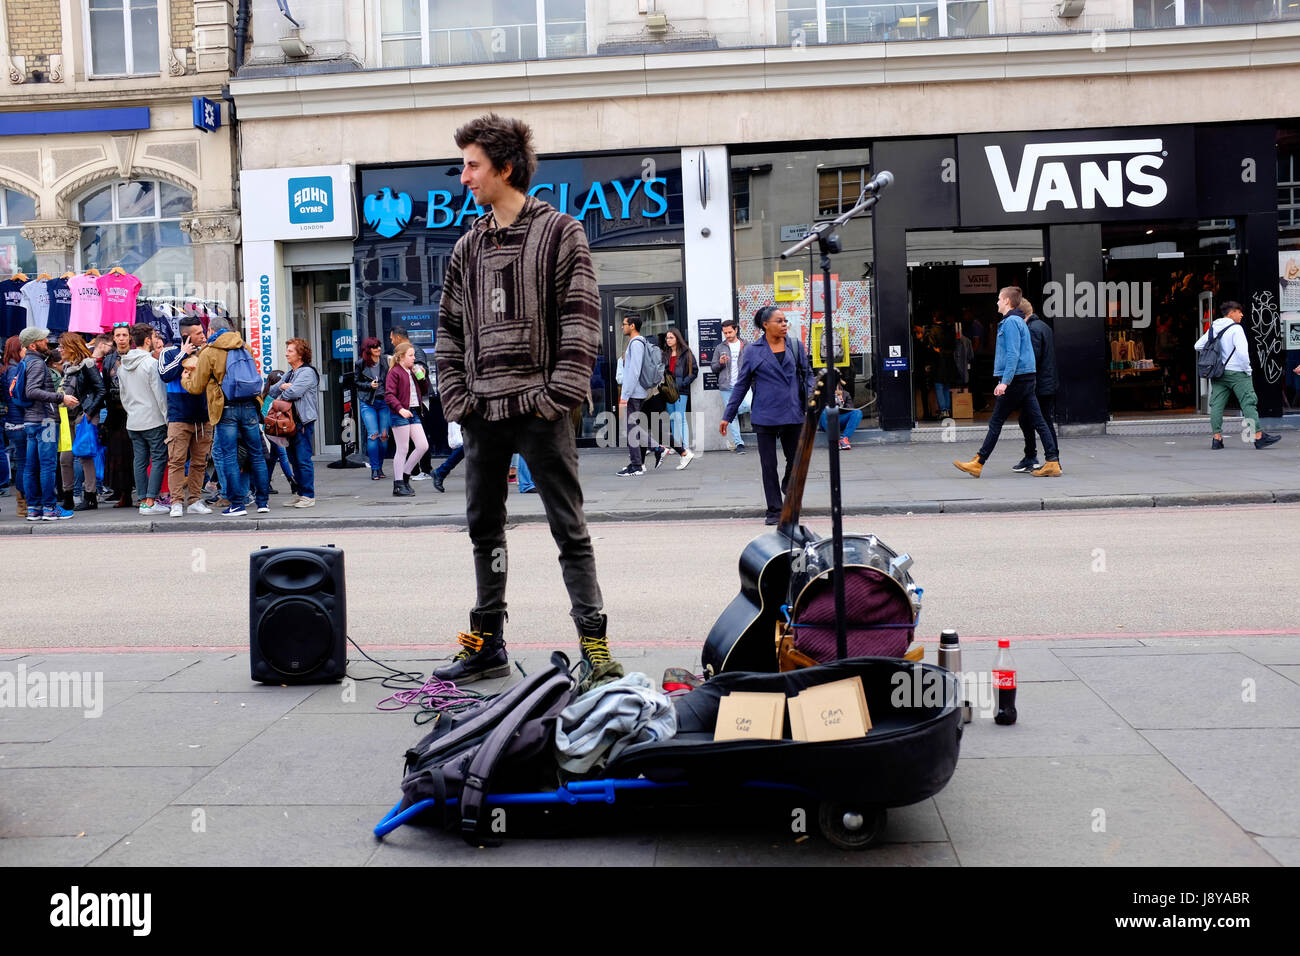 Cameron is a street performer and he lives in a Van in North London. - Stock Image